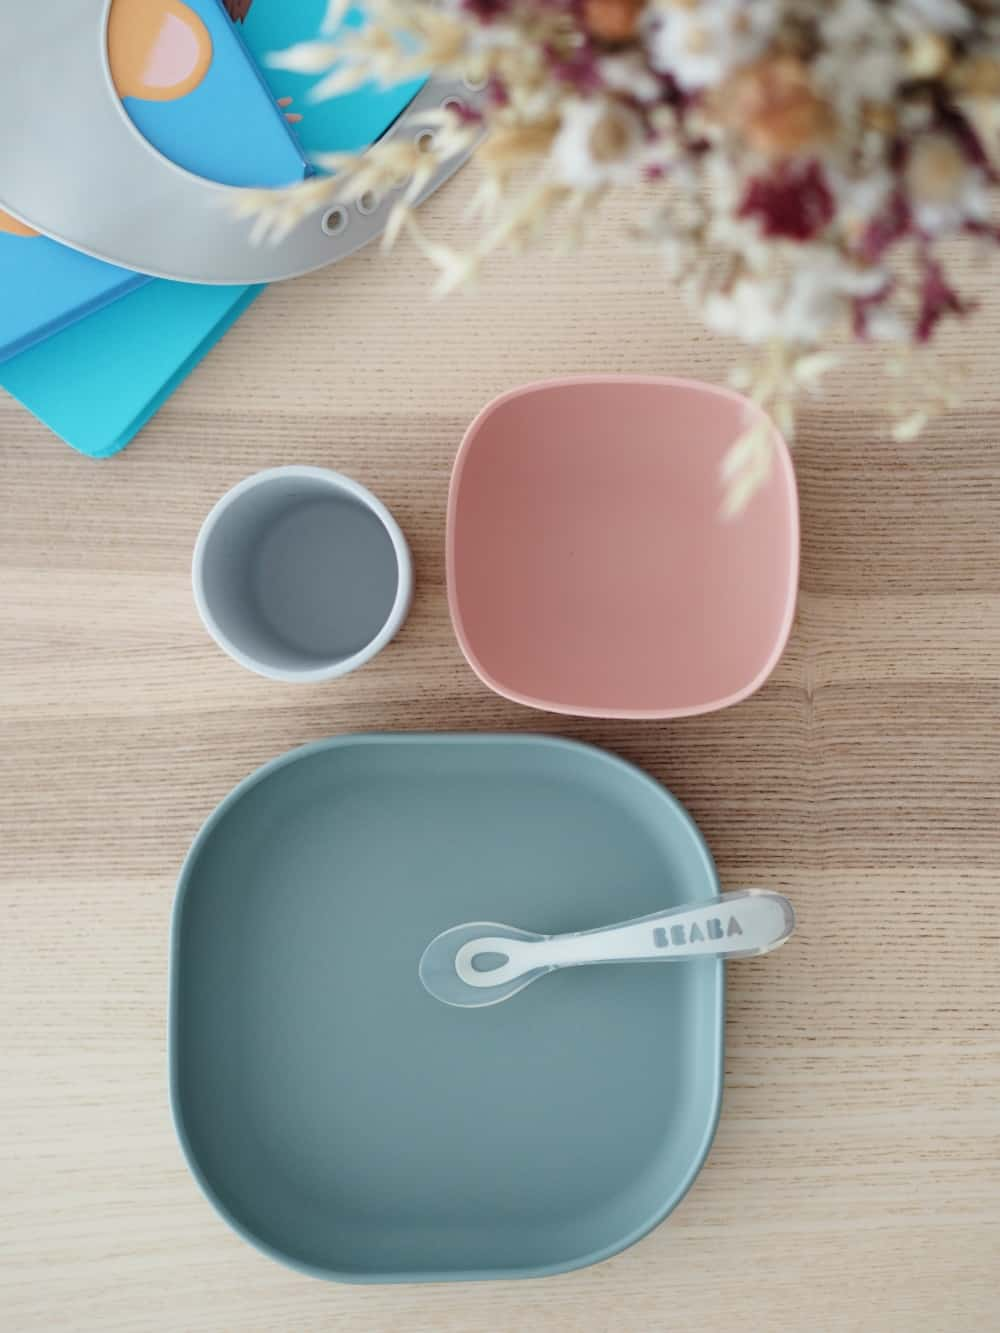 Silicone Suction Meal Set Eucalyptus Overhead On Table